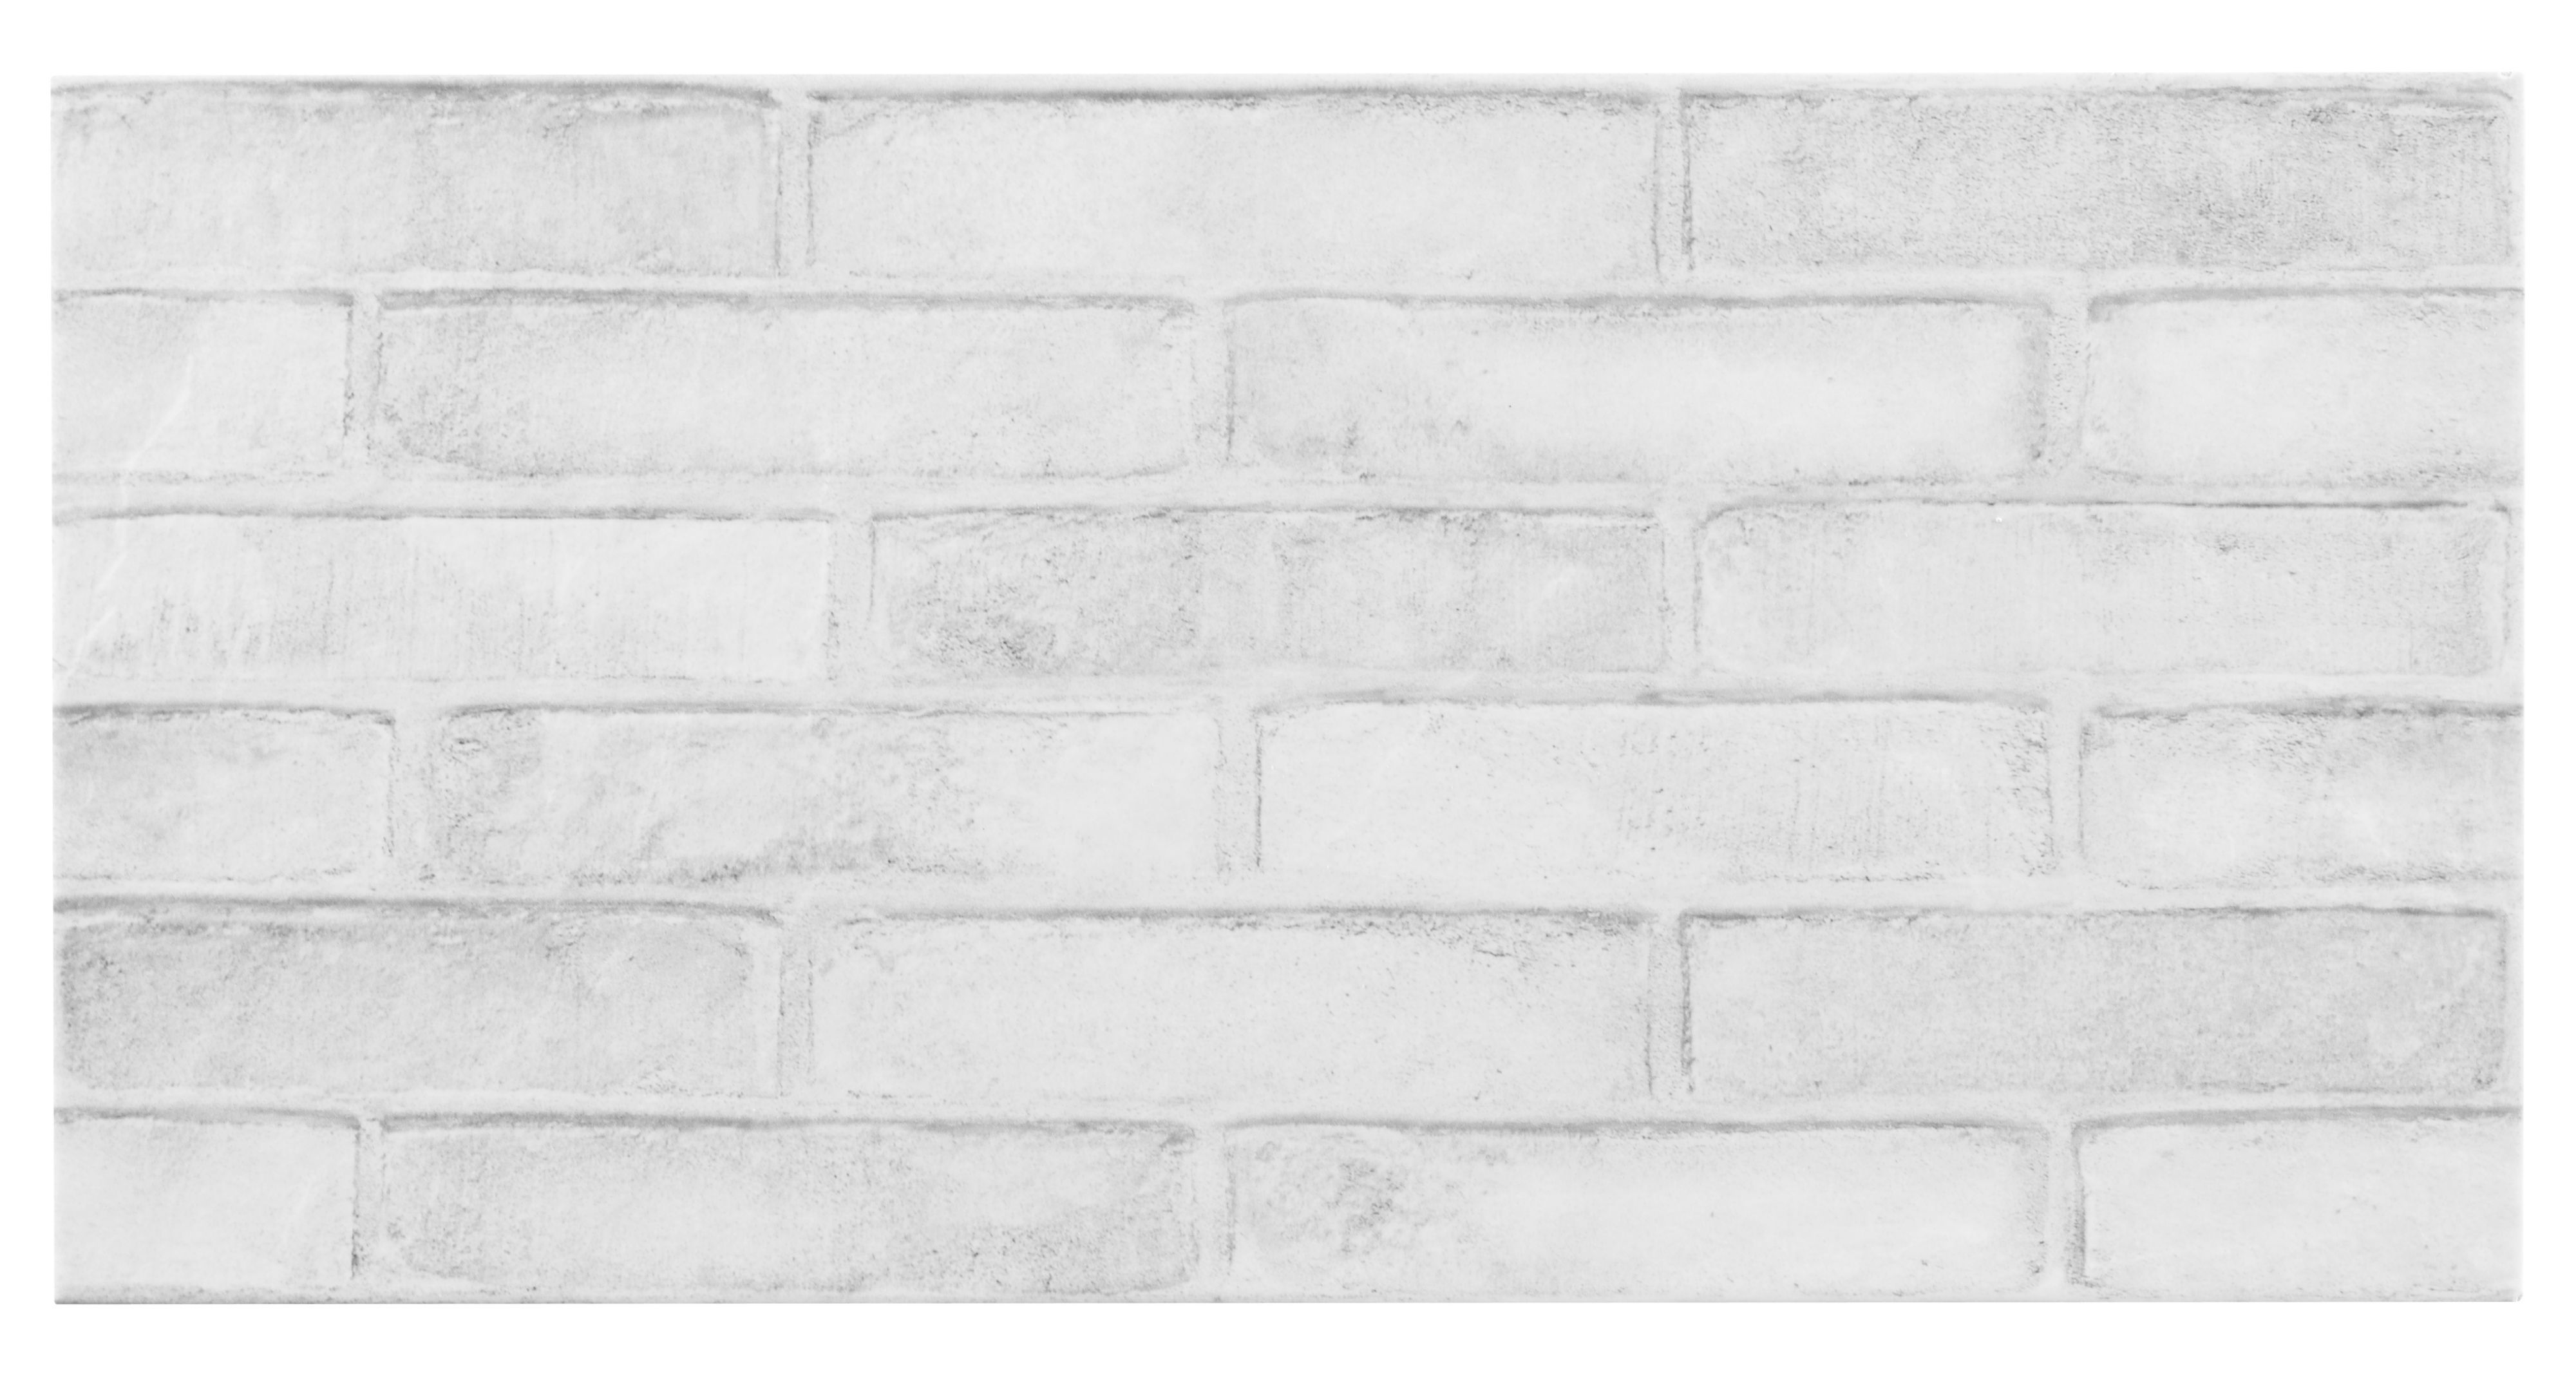 Lofthouse Whitewash Brick Effect Ceramic Wall Floor Tile Pack Of 6 L 598mm W 298mm Departments Diy At B Q Tile Floor White Wash Brick Brick Tiles